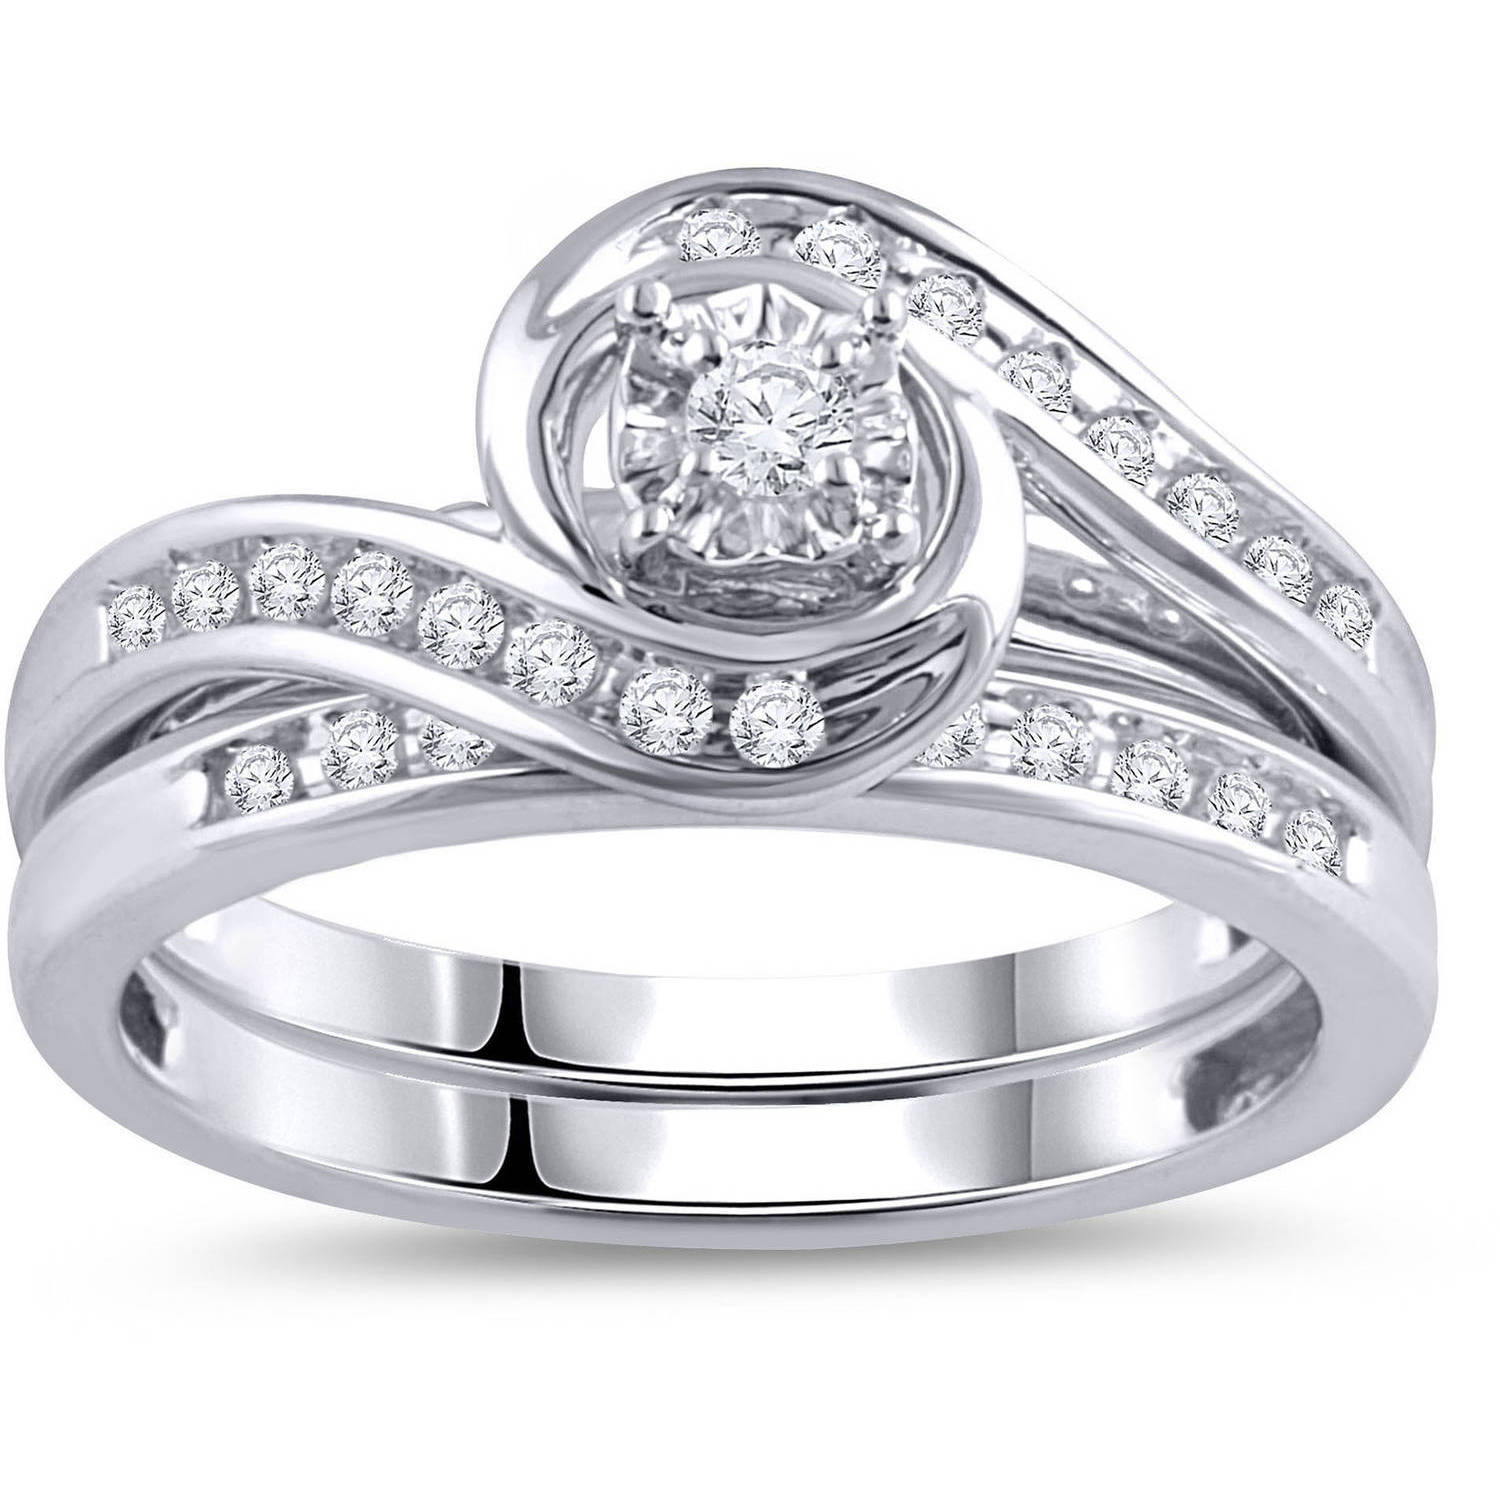 1/3 Carat T.W. Diamond Bypass Ring Bridal Set in 10kt White Gold, Size 7